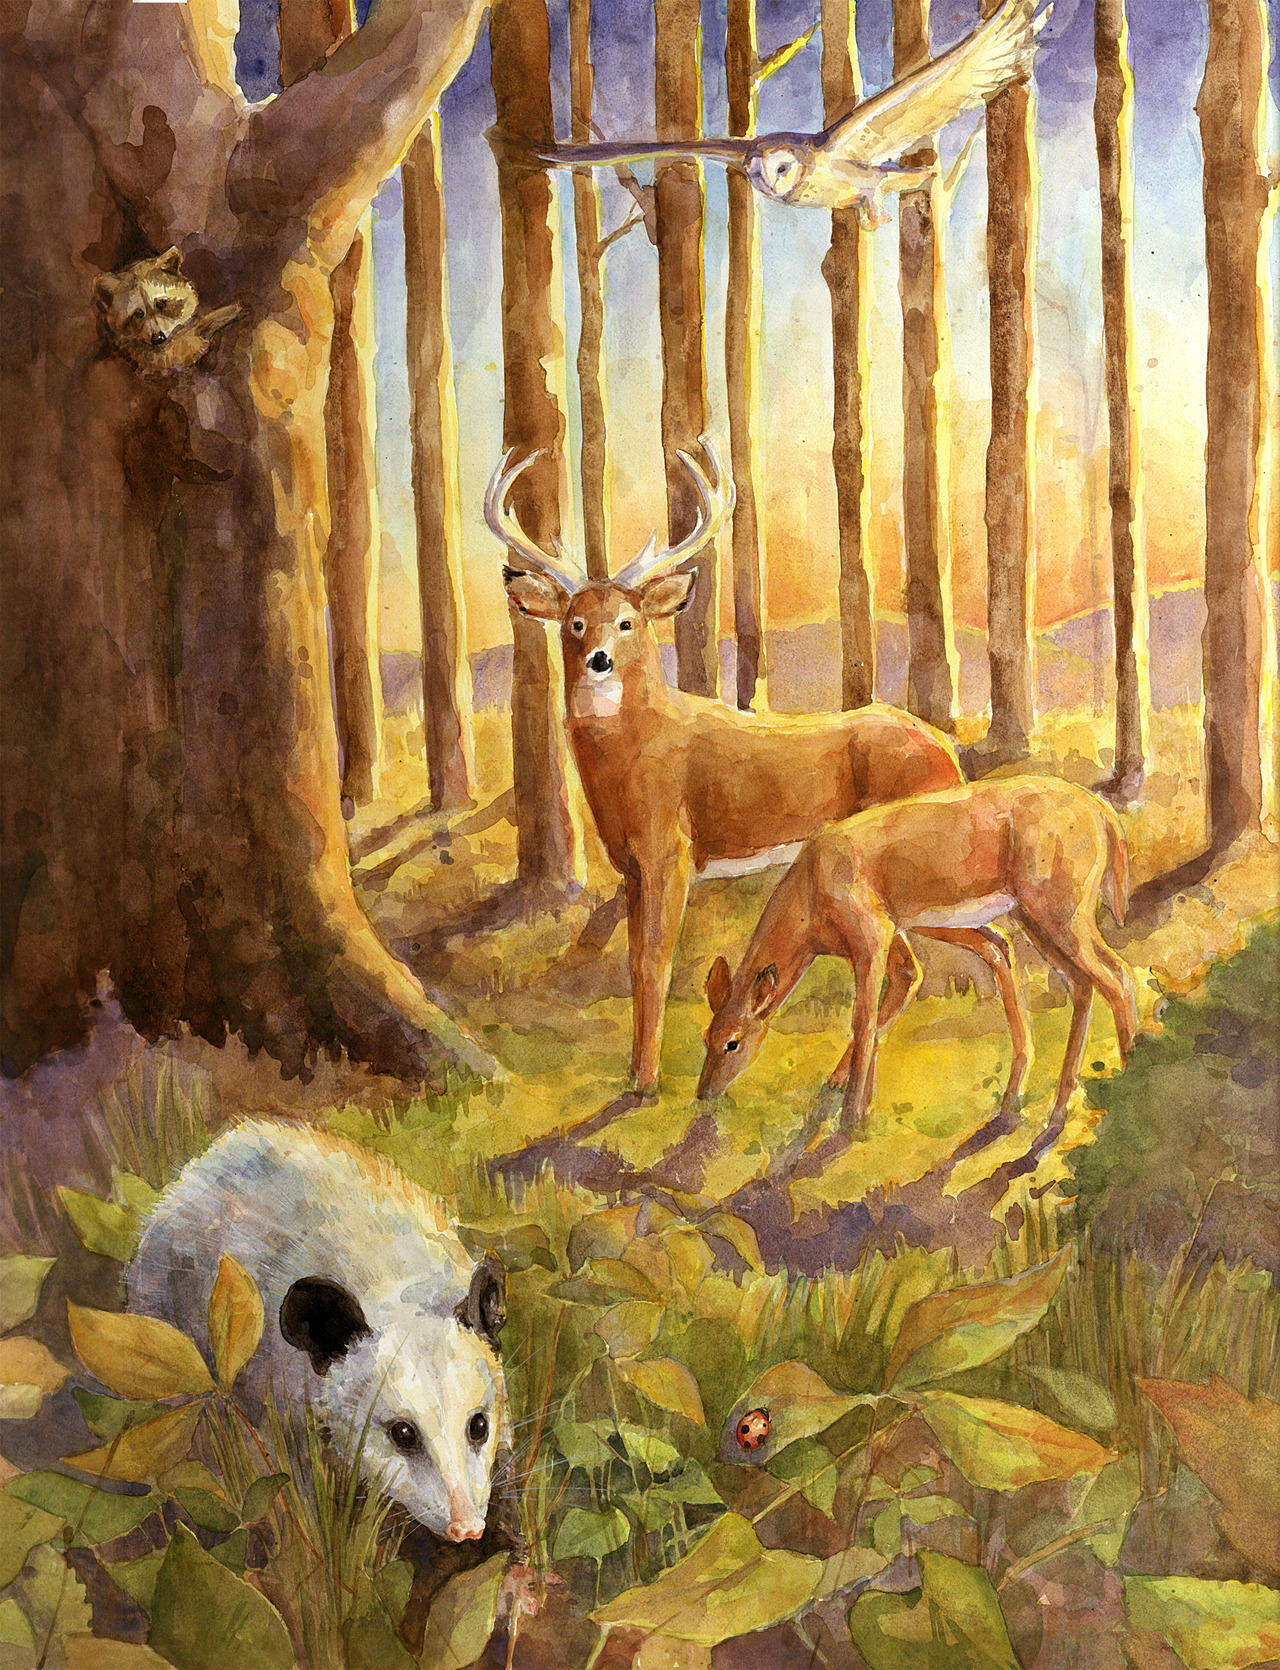 Final illustration for my independent proposal project. I wanted to do a more complex scene with multiple species of animals in the same space. It was inspired by the ecology posters/ illustrations you can find in ecology textbooks and science classrooms. I wanted to do a similar idea- remaining true to the technical aspects of the species (both flora and fauna) while turning to a painterly vs. technical aesthetic. It is set at sunset to add further interest and challenge myself even more.